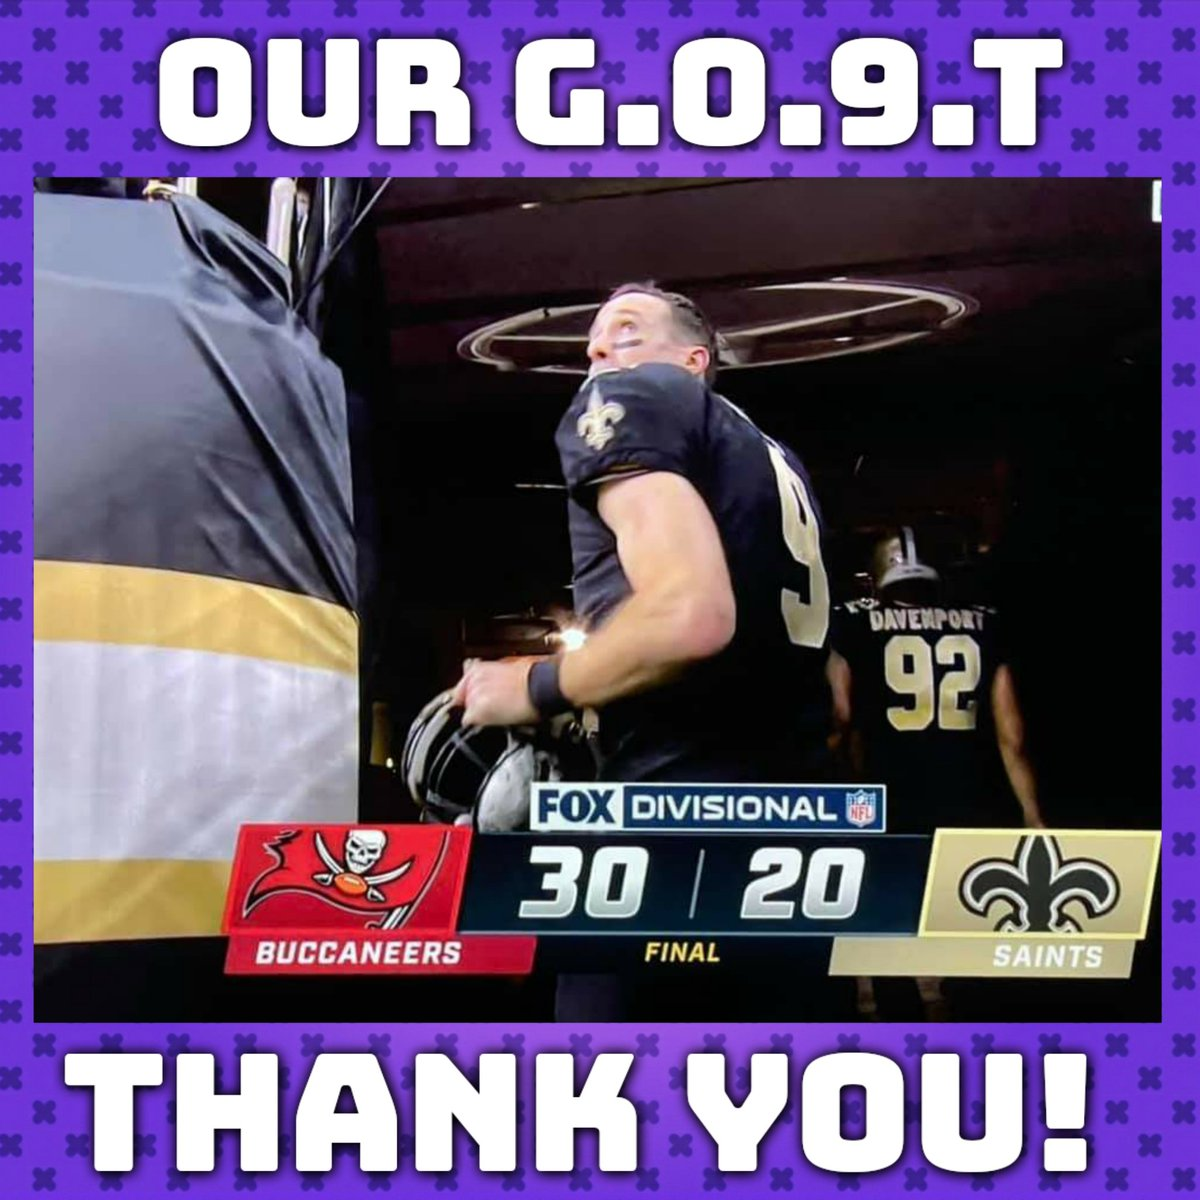 It didn't end the way we wanted but it's been one hell of a ride. We can't thank you enough @drewbrees for helping build an incredible golden era in @Saints history and all the memories that made watching them become so damn enjoyable. #NOLA #NewOrleans #Saints #WhoDat #DrewBrees